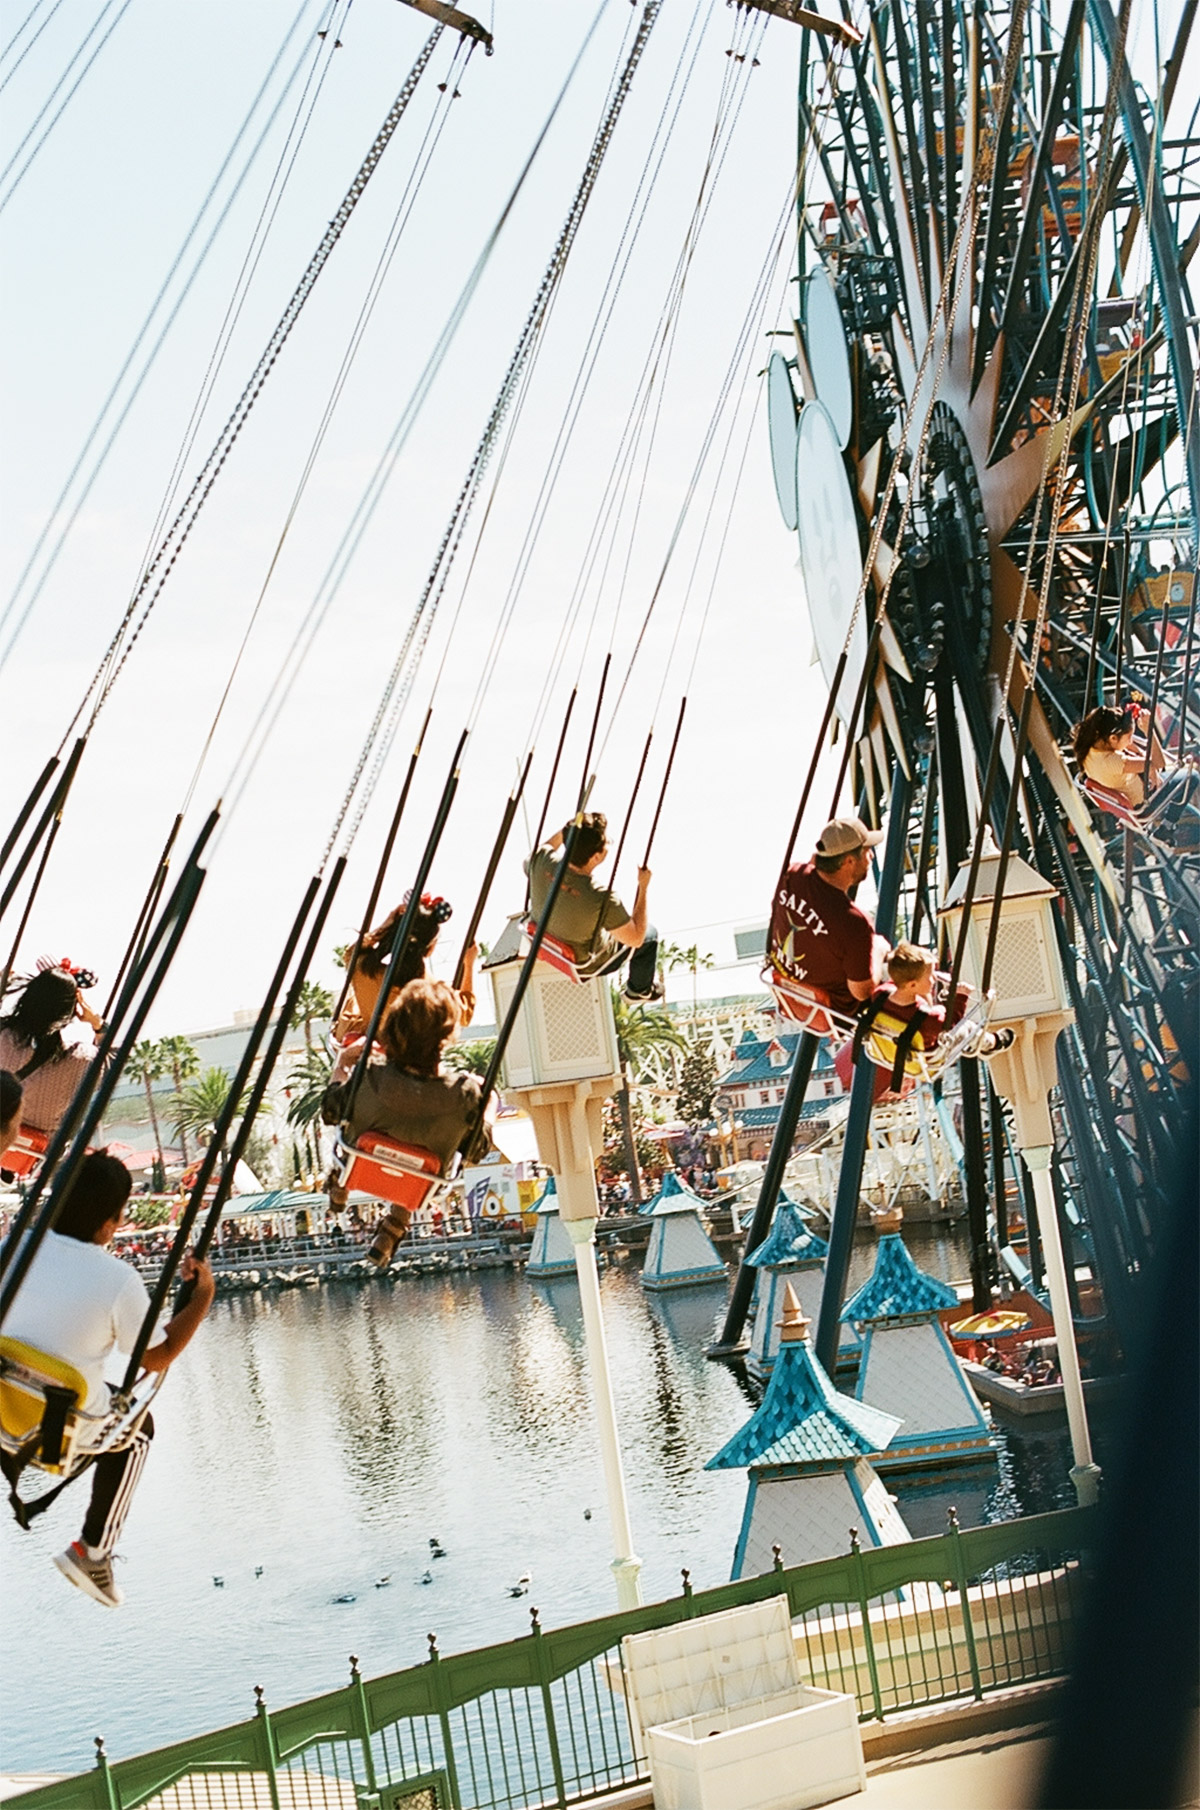 People riding carousel swing ride at an amusement park